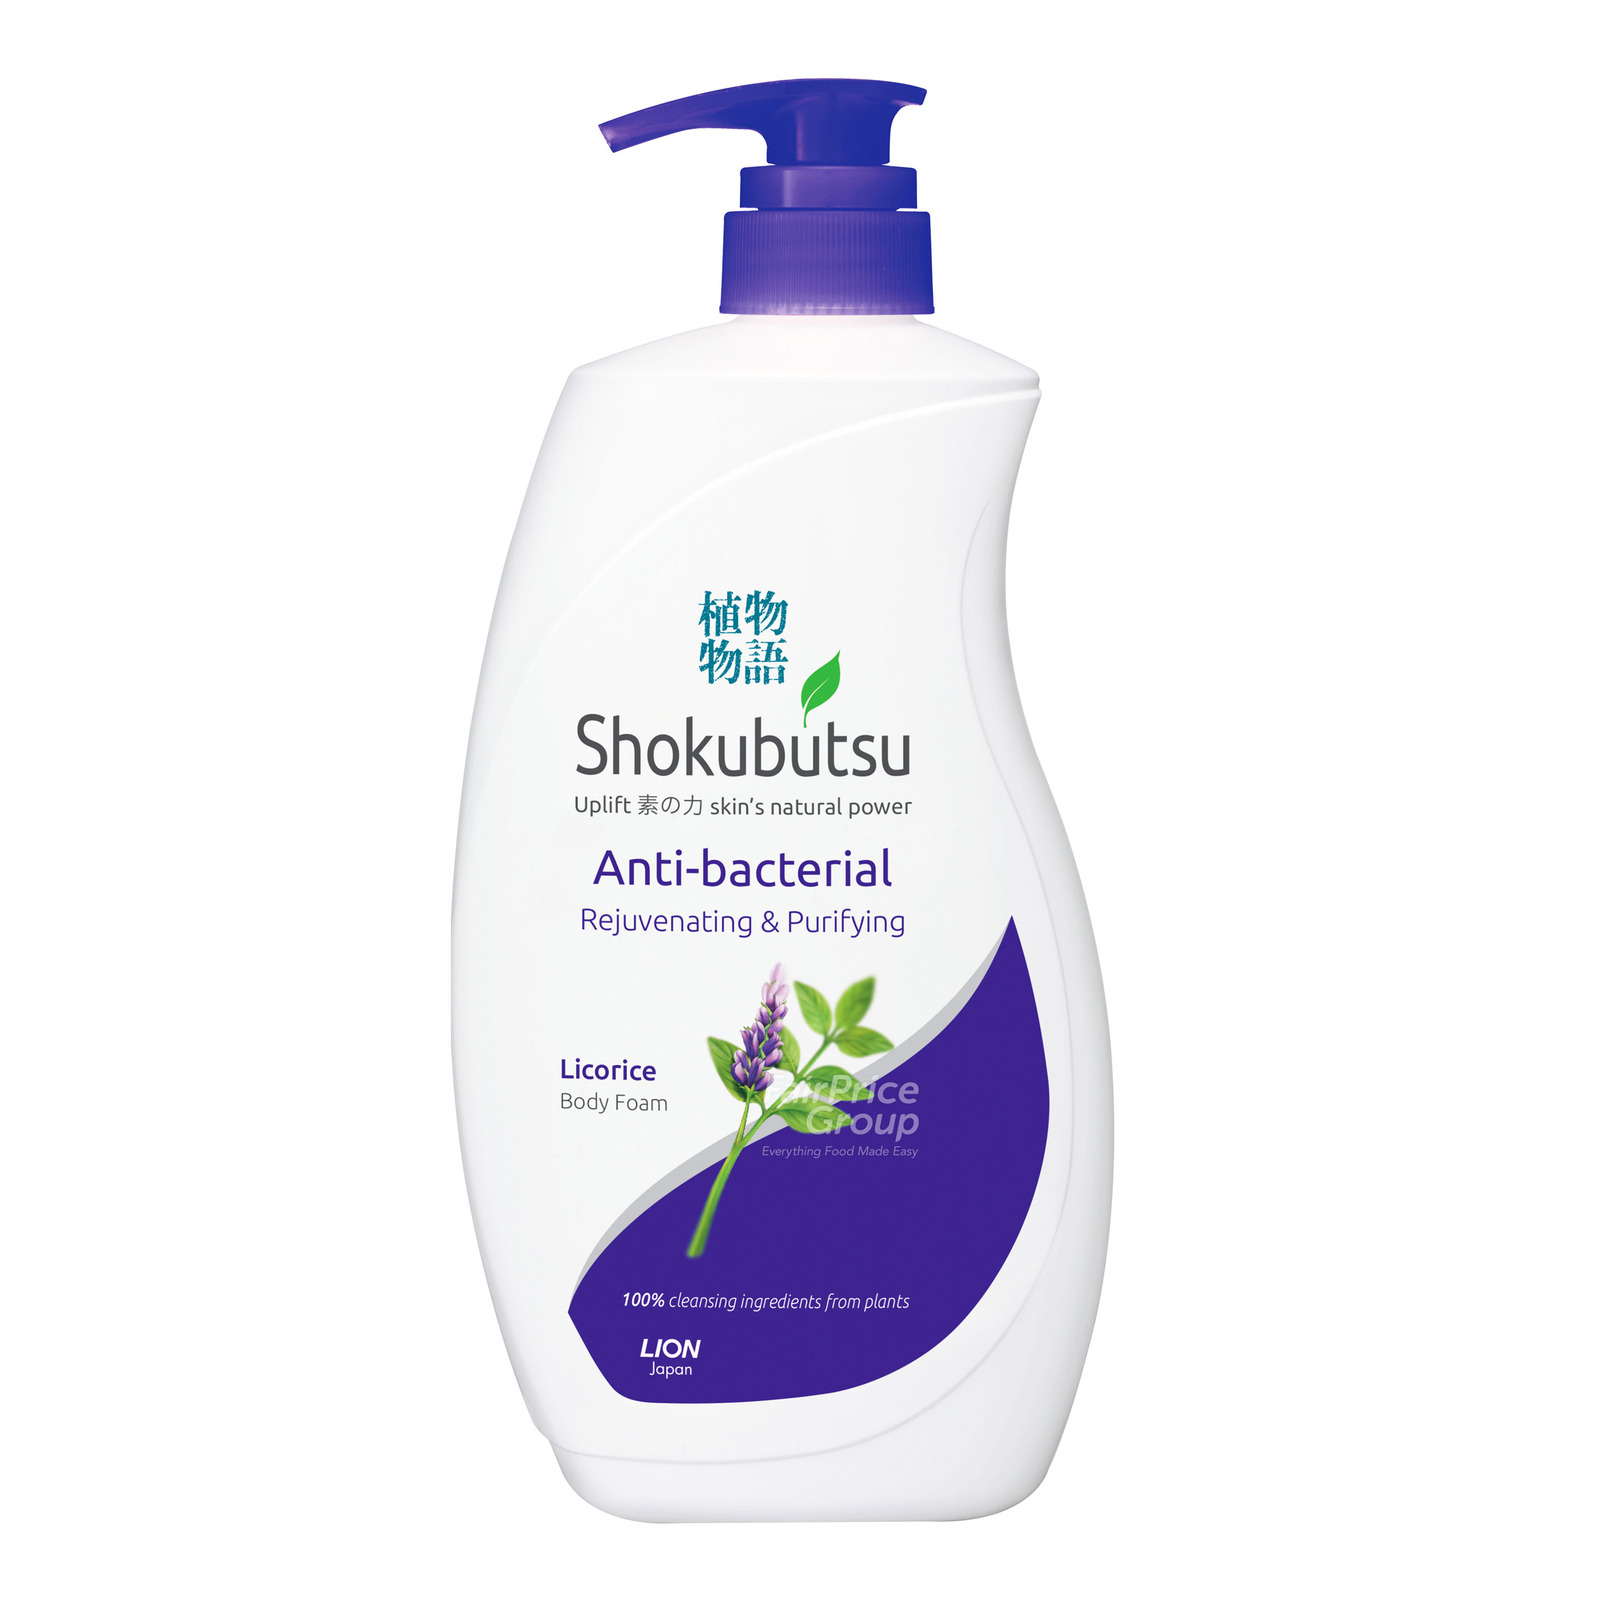 Shokubutsu Anti-bacterial Body Foam - Rejuvena & Purify